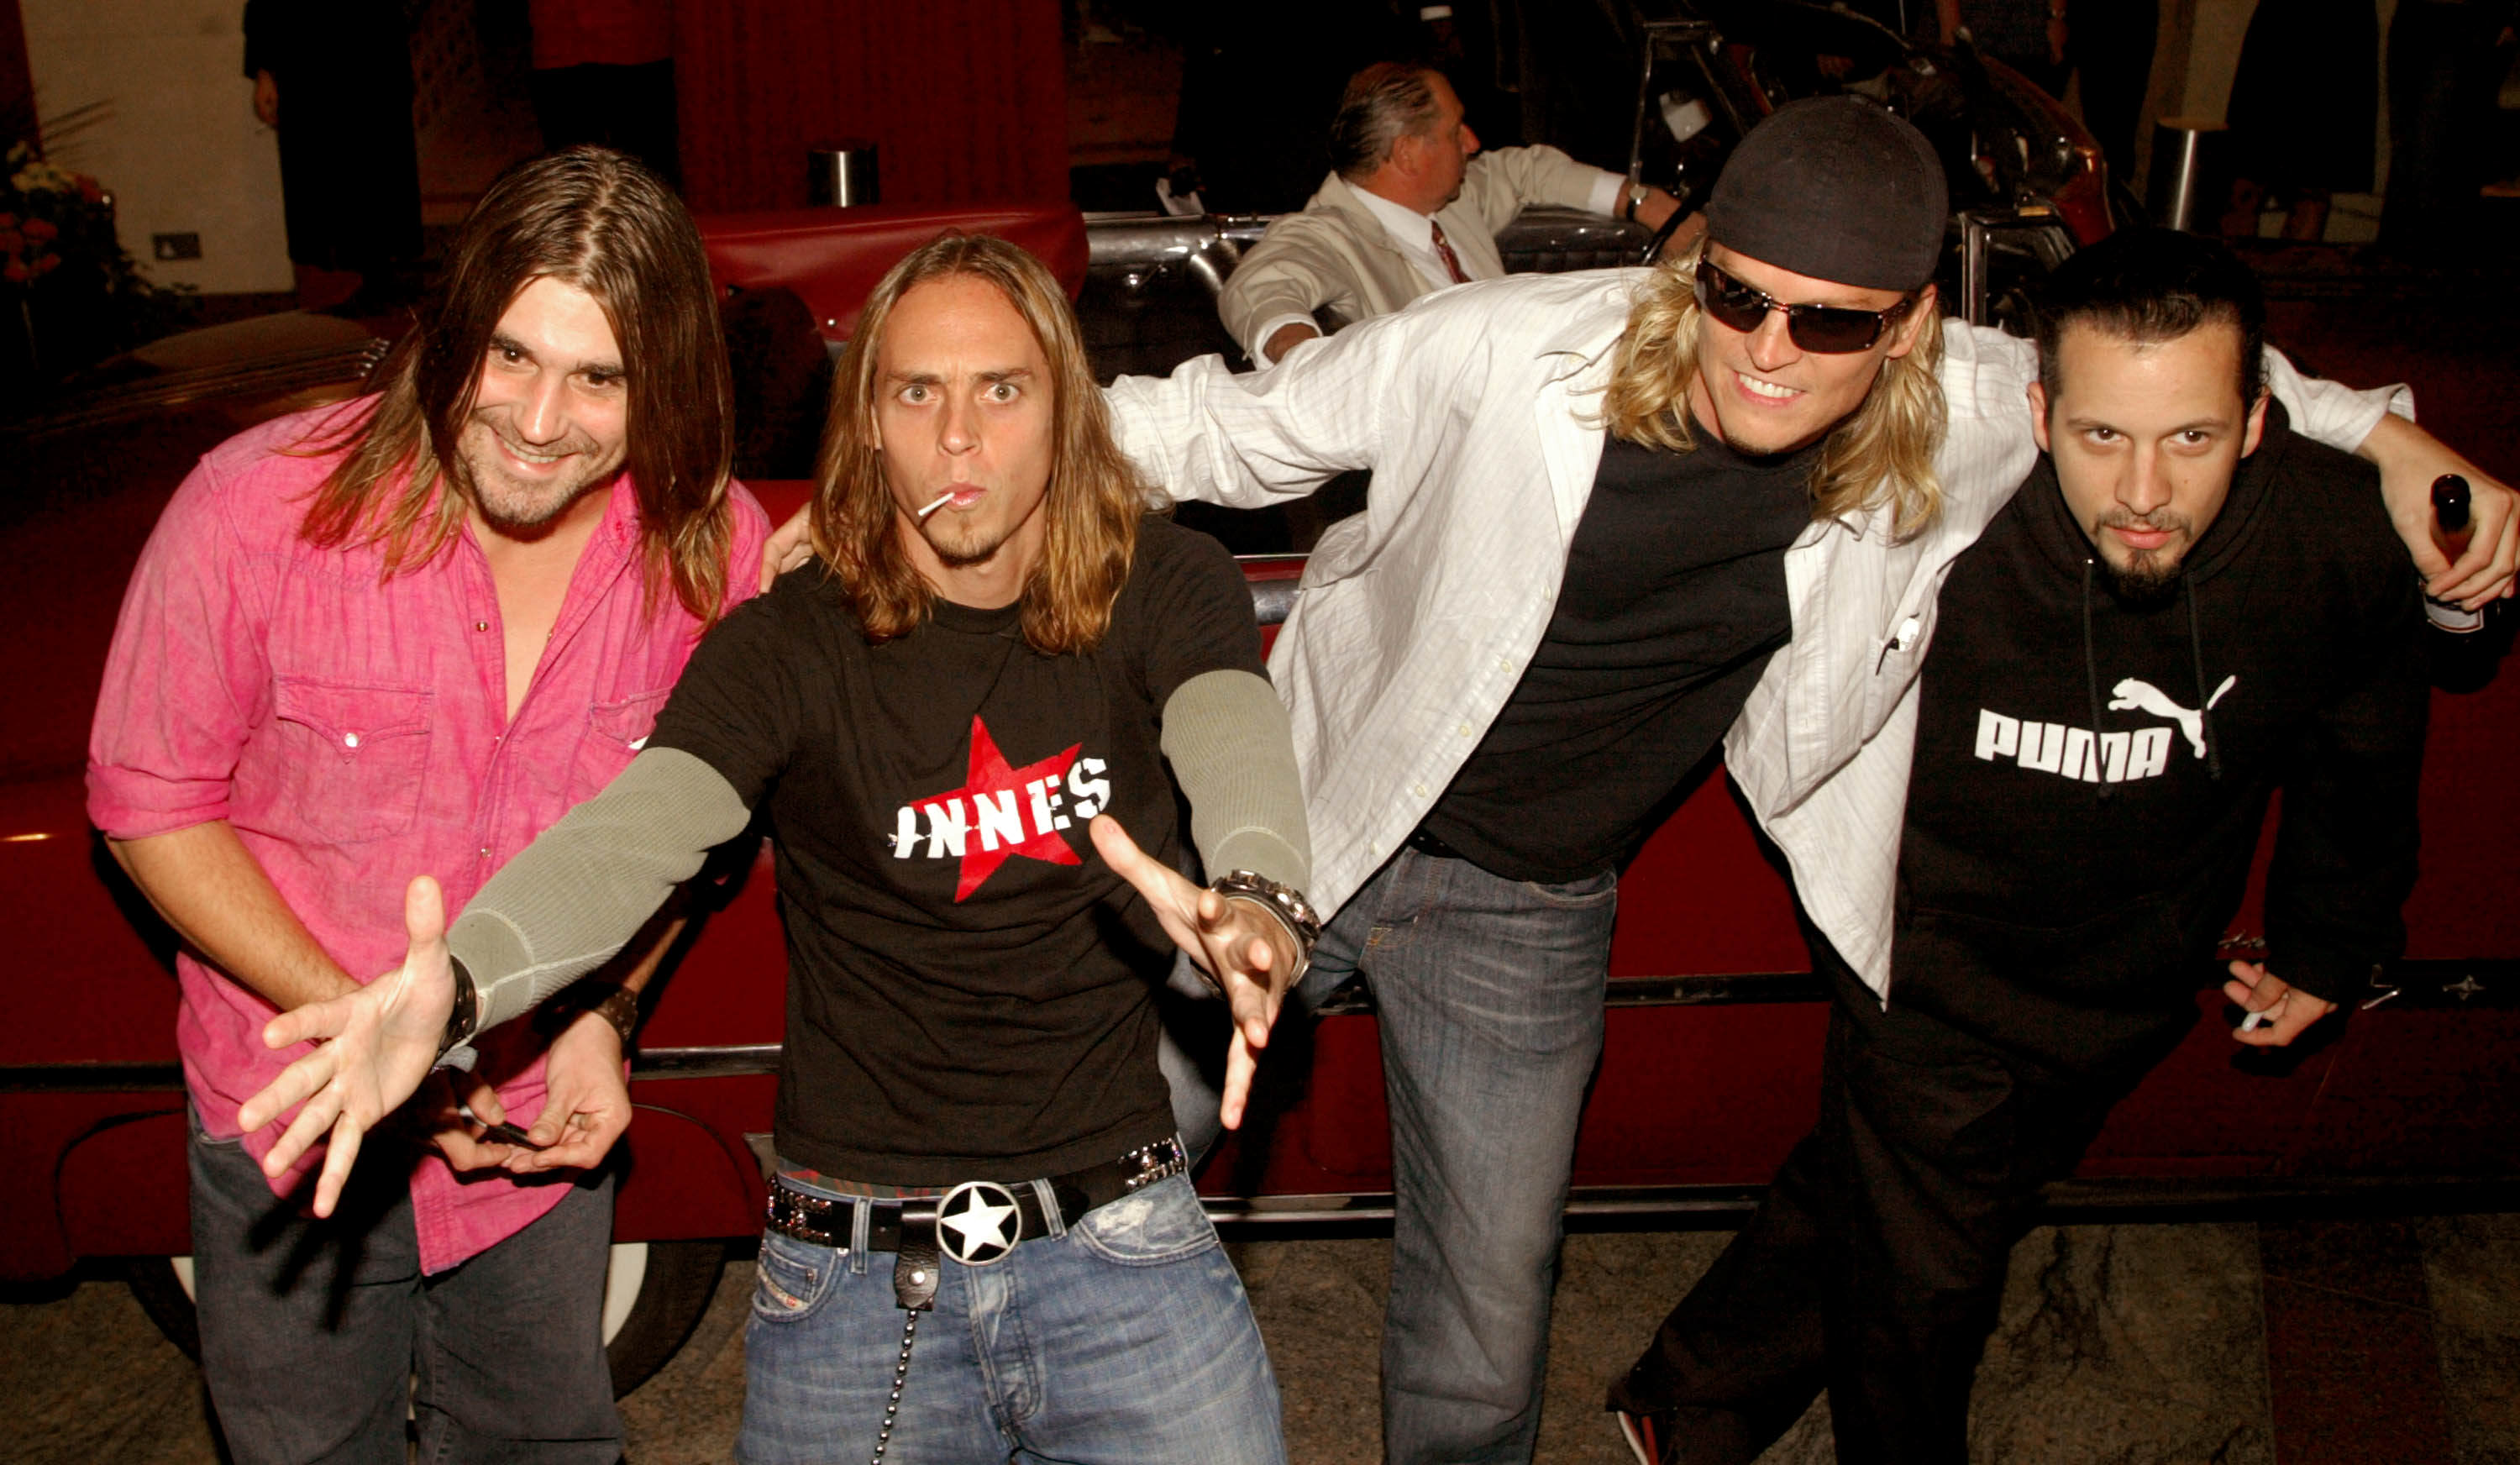 Entire Band Quit Puddle Of Mudd Mid Show After Lead Singer Meltdown GettyImages 1356666